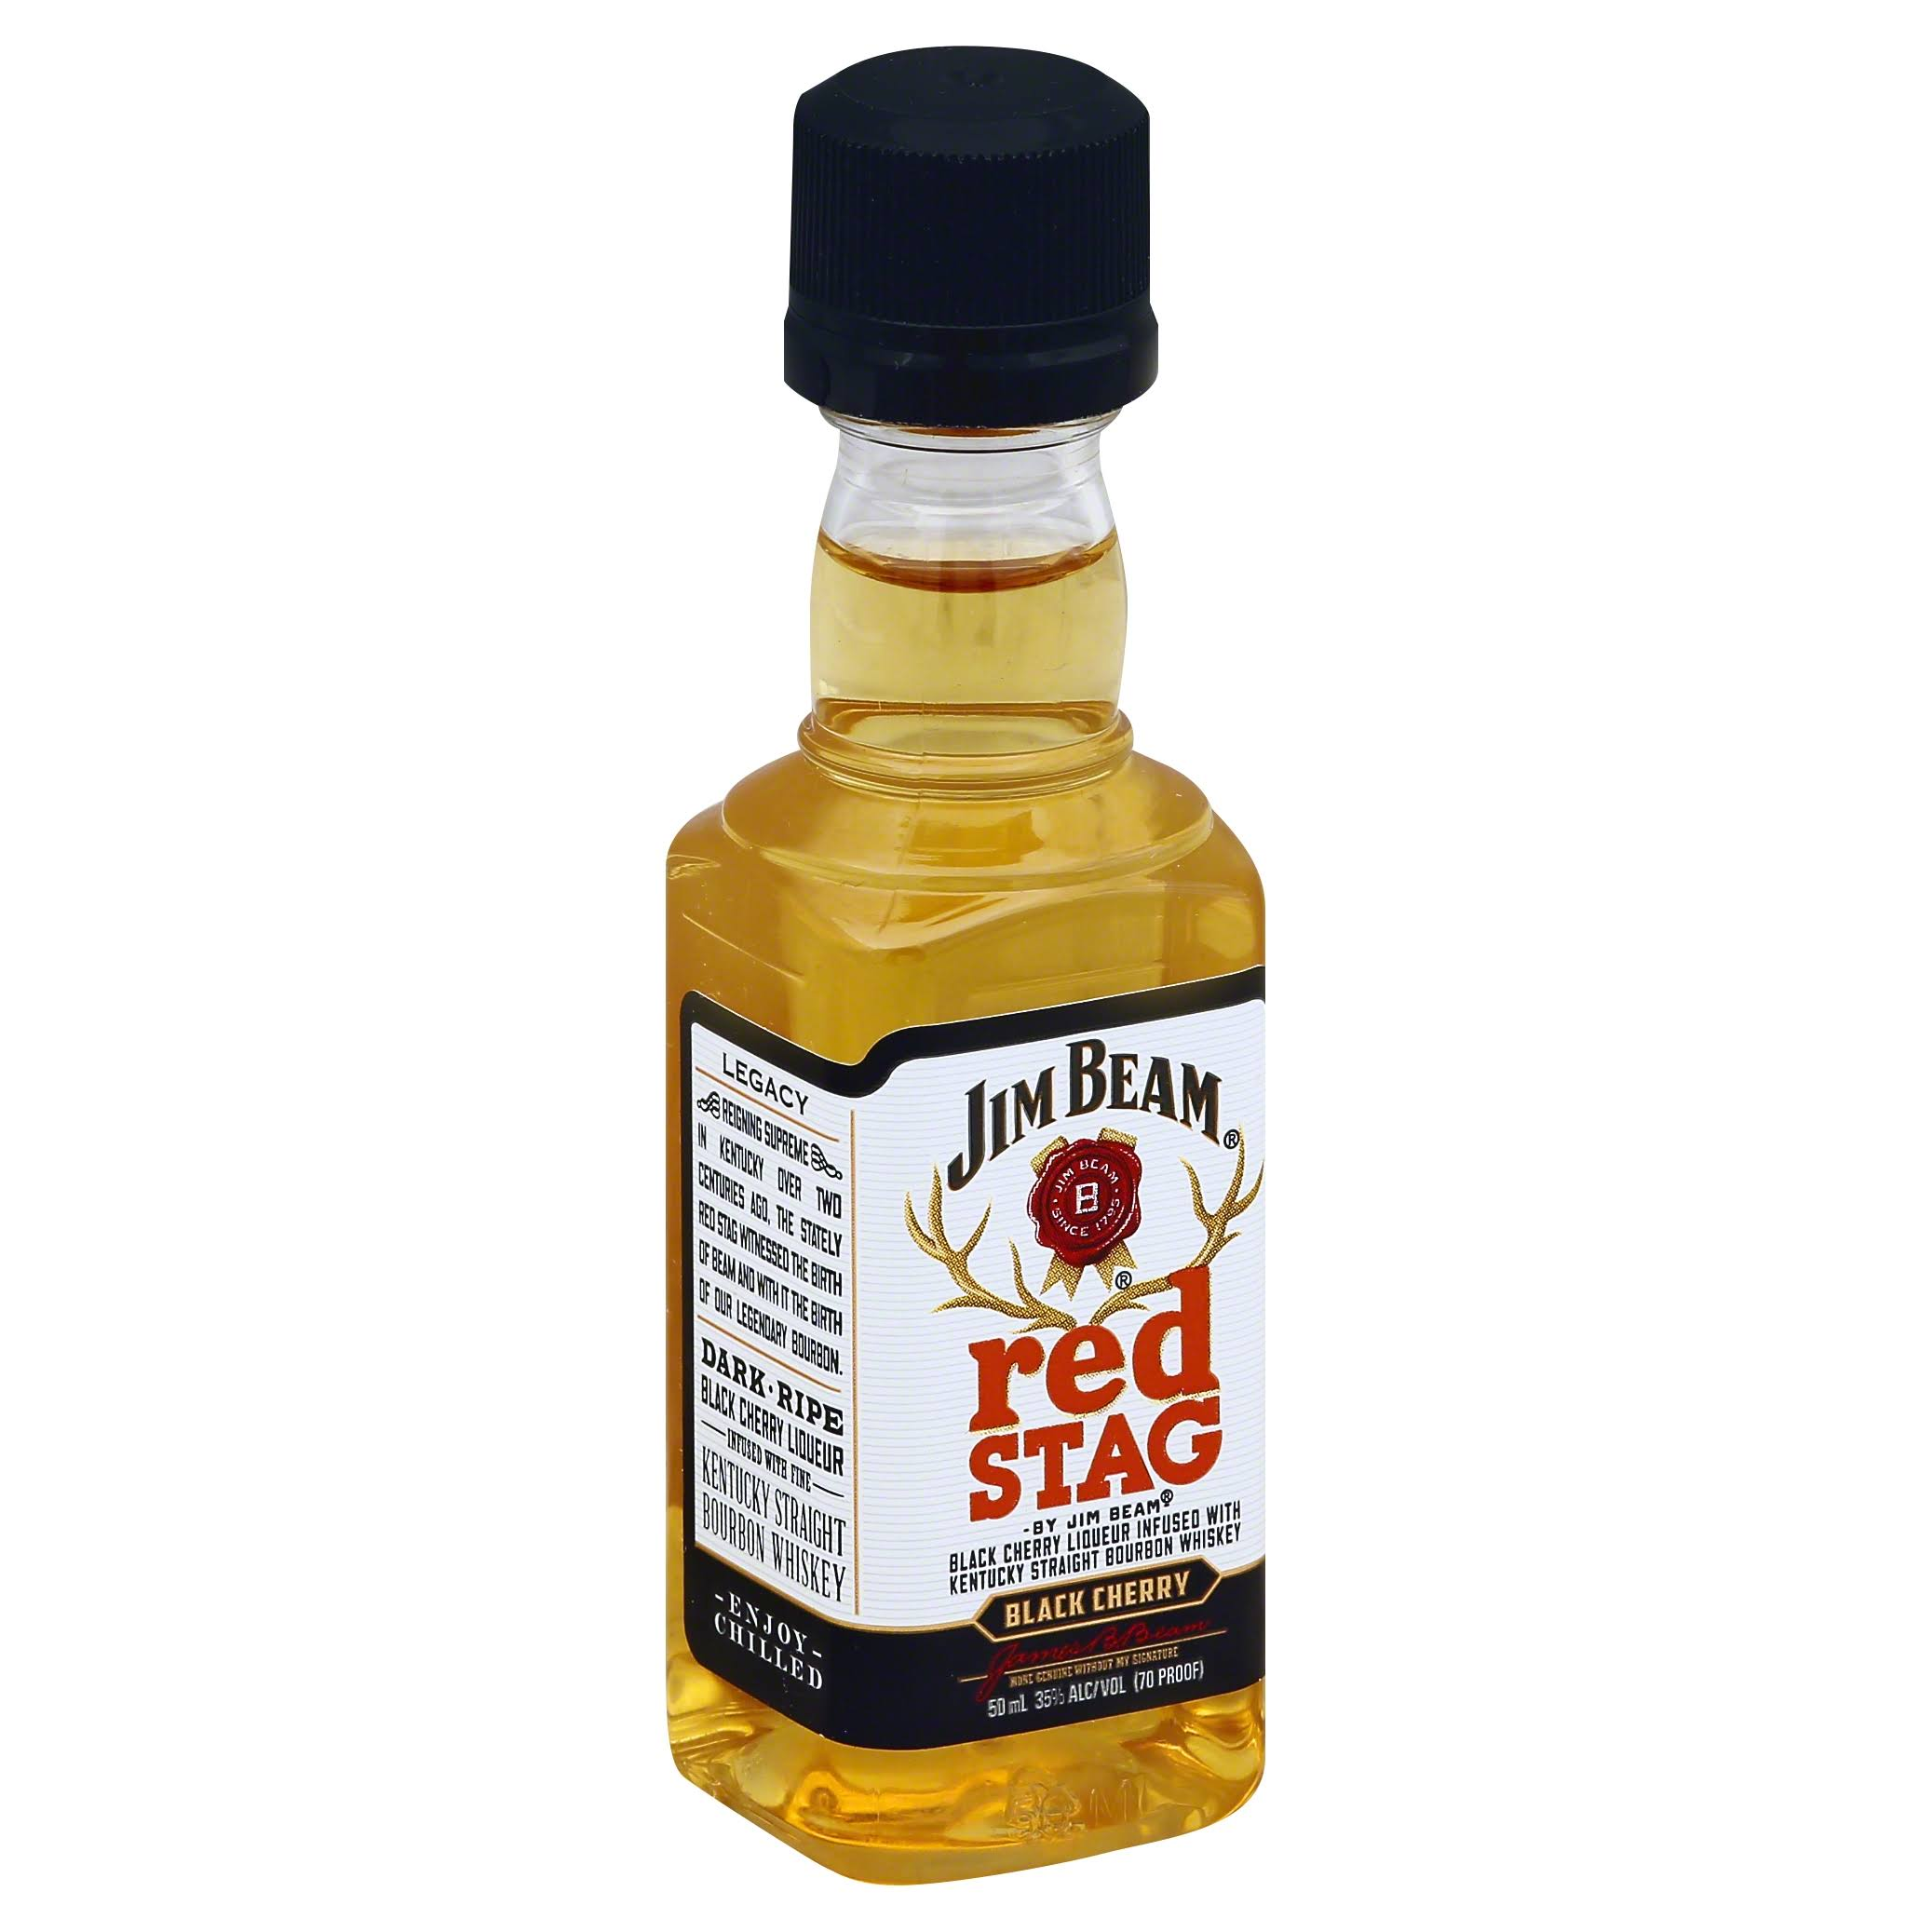 Jim Beam Red Stag Black Cherry Bourbon - 50ml